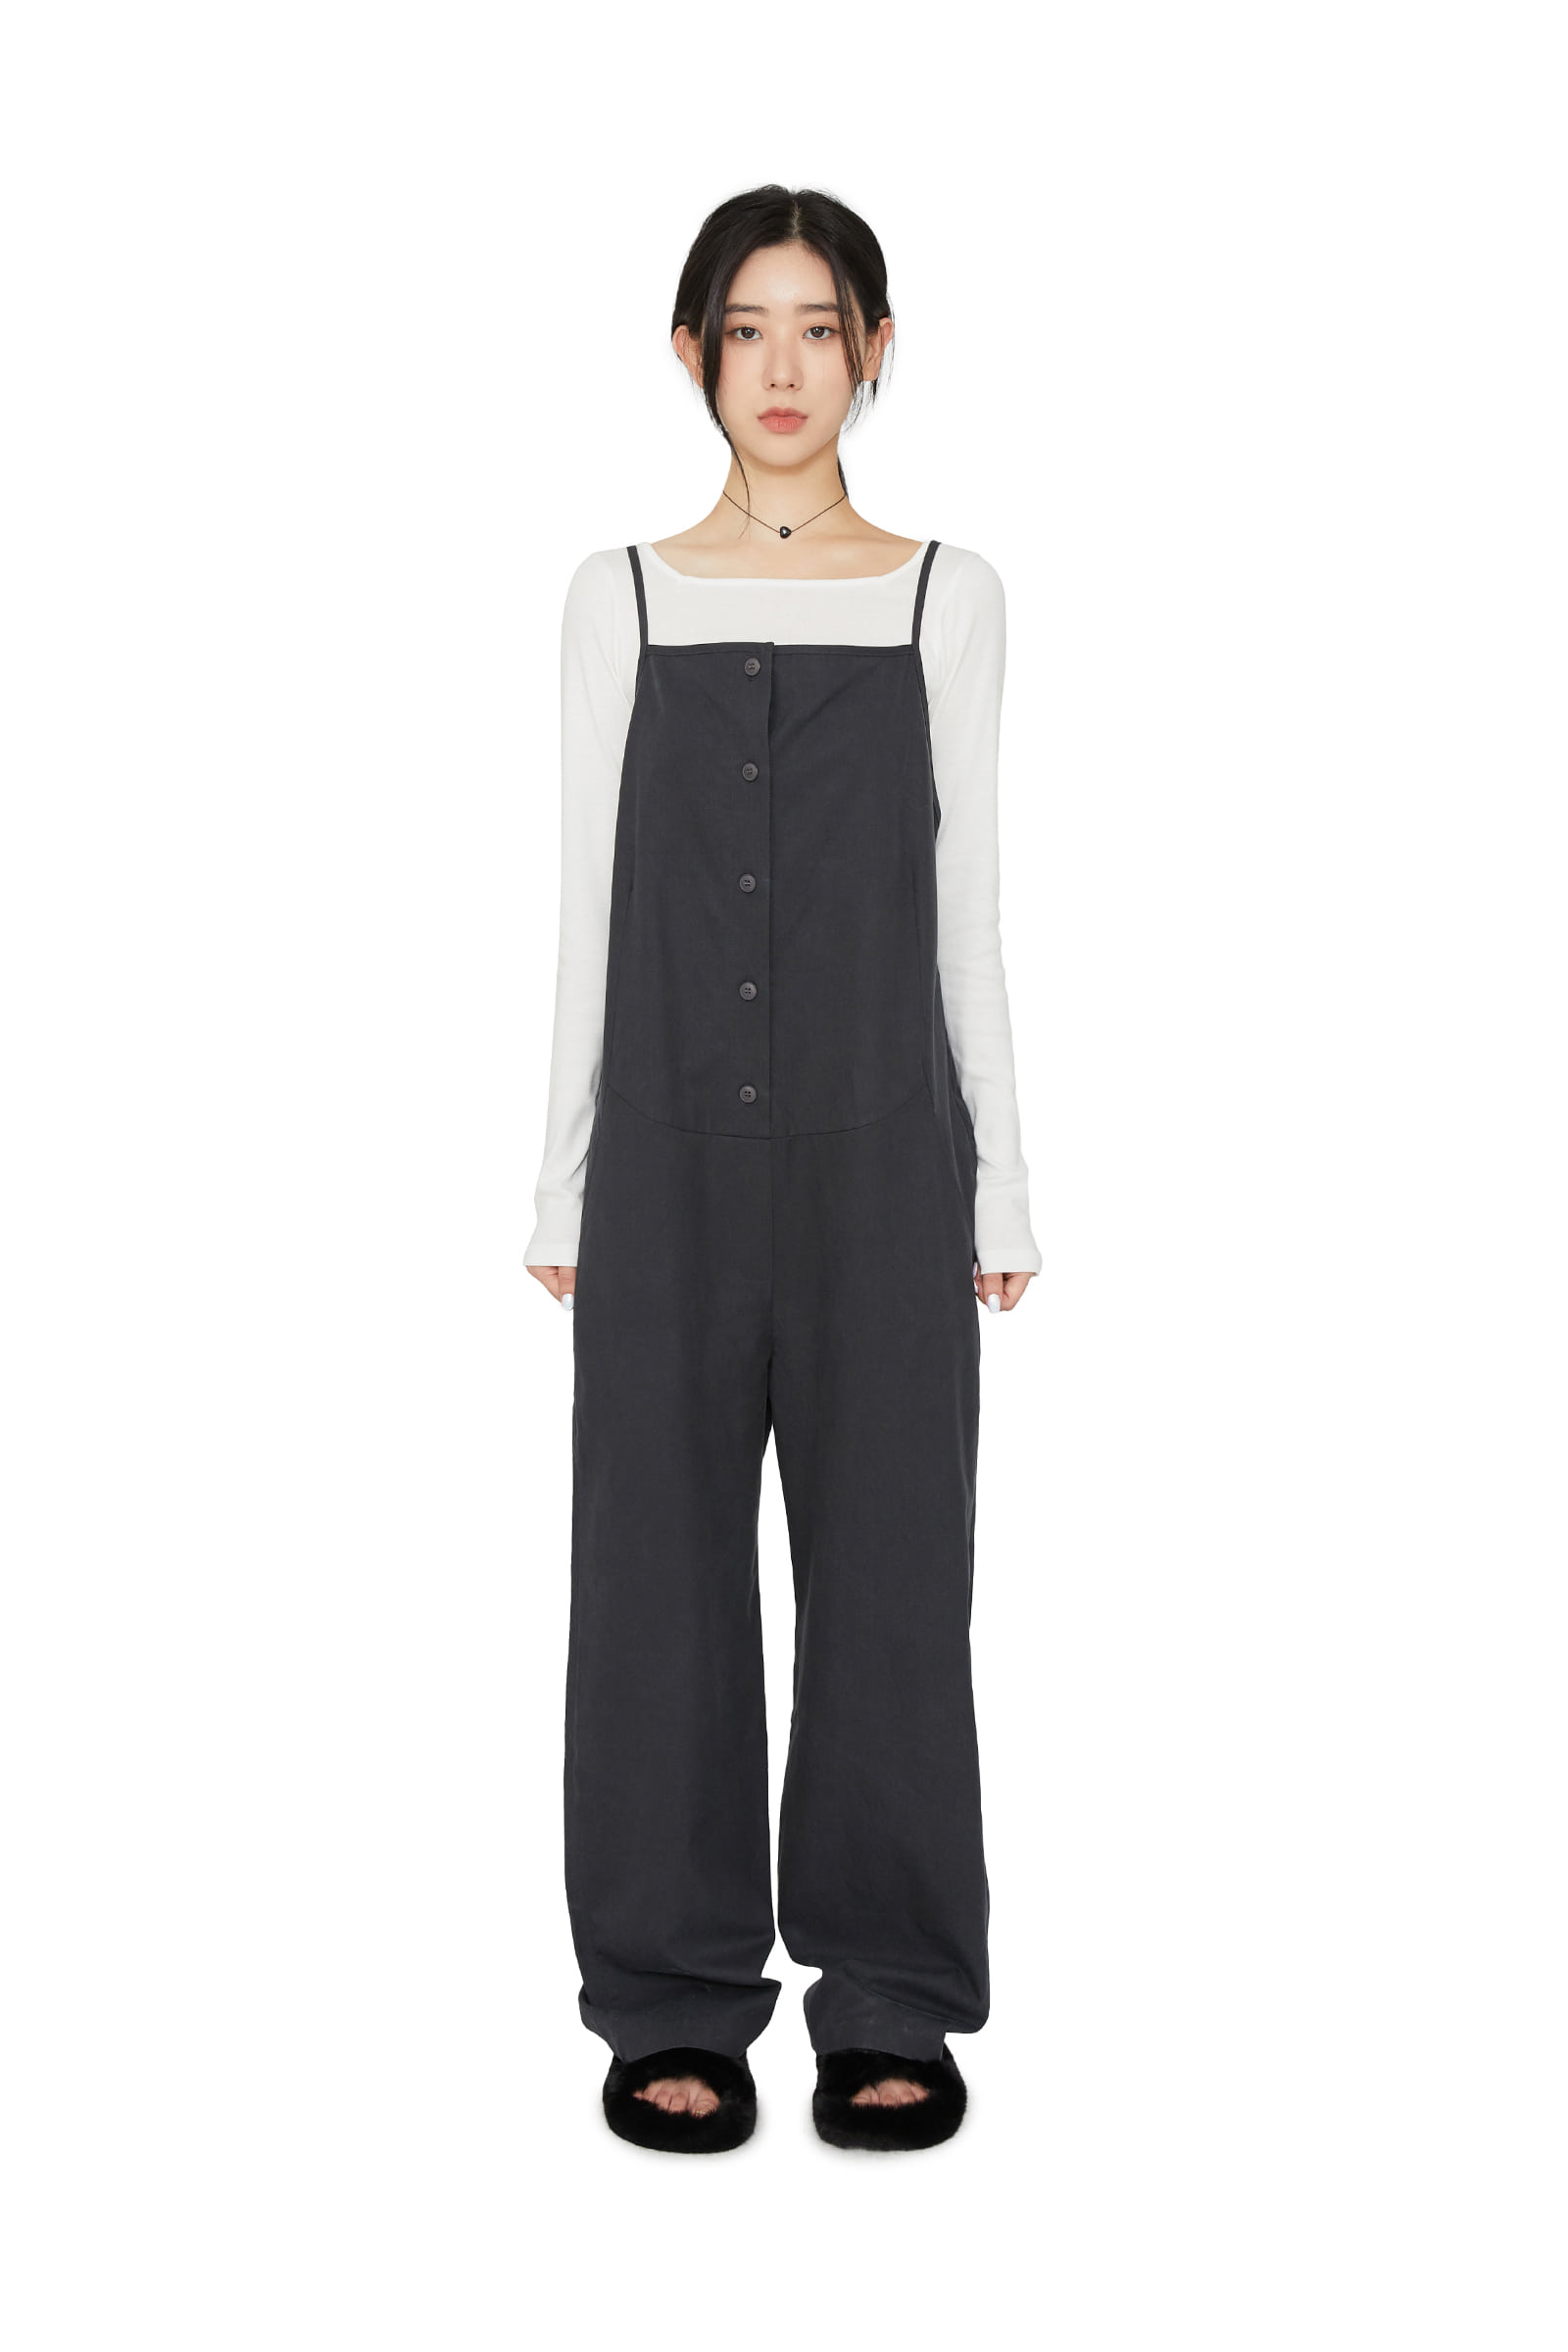 Lego over jumpsuit